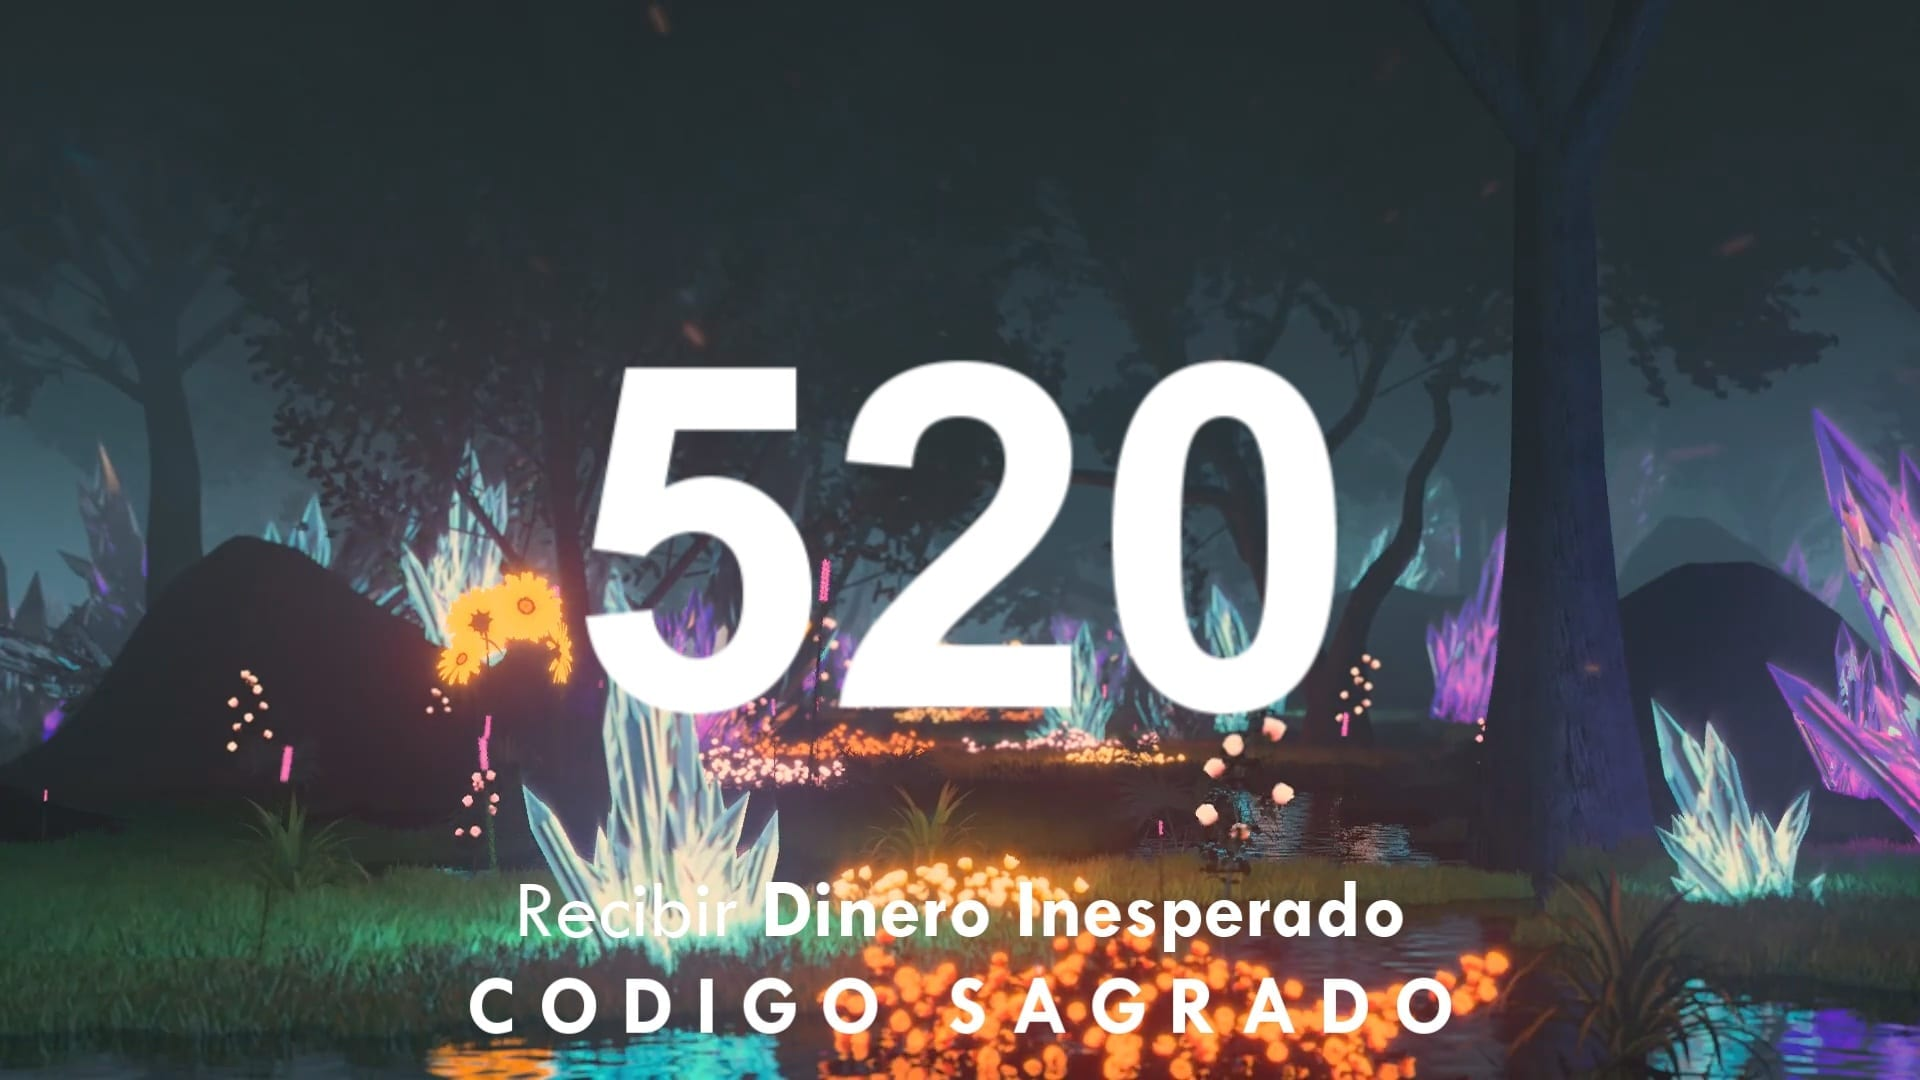 DINERO INESPERADO 520 CODIGO SAGRADO AGESTA ¿Con solo mirar un simple video